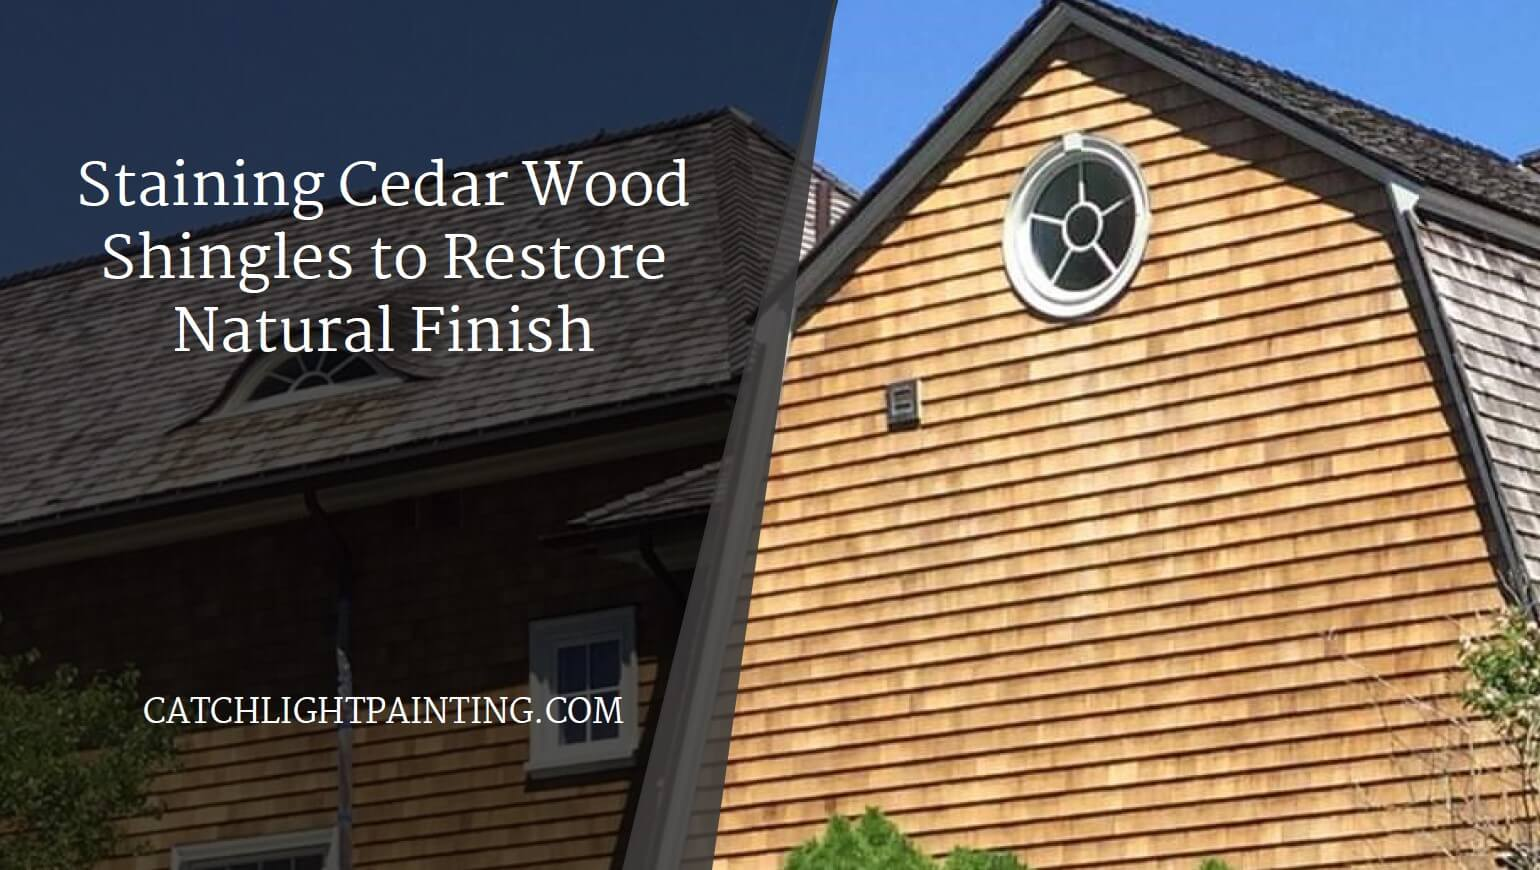 Staining Cedar Wood Shingles to Restore Natural Finish